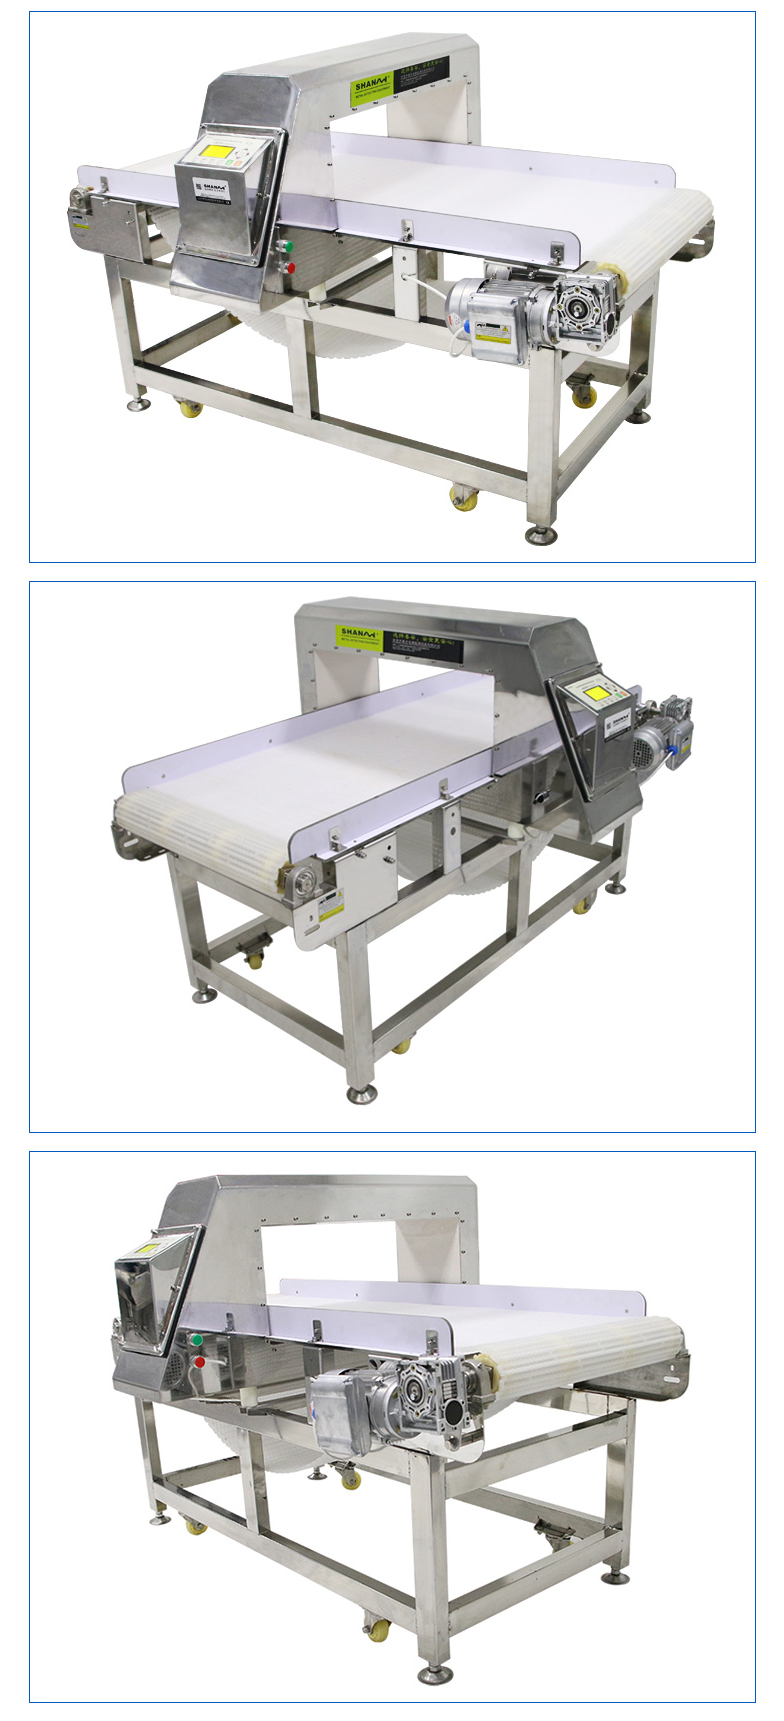 Sheet chain metal detector for Aquatic products,  hygiene products